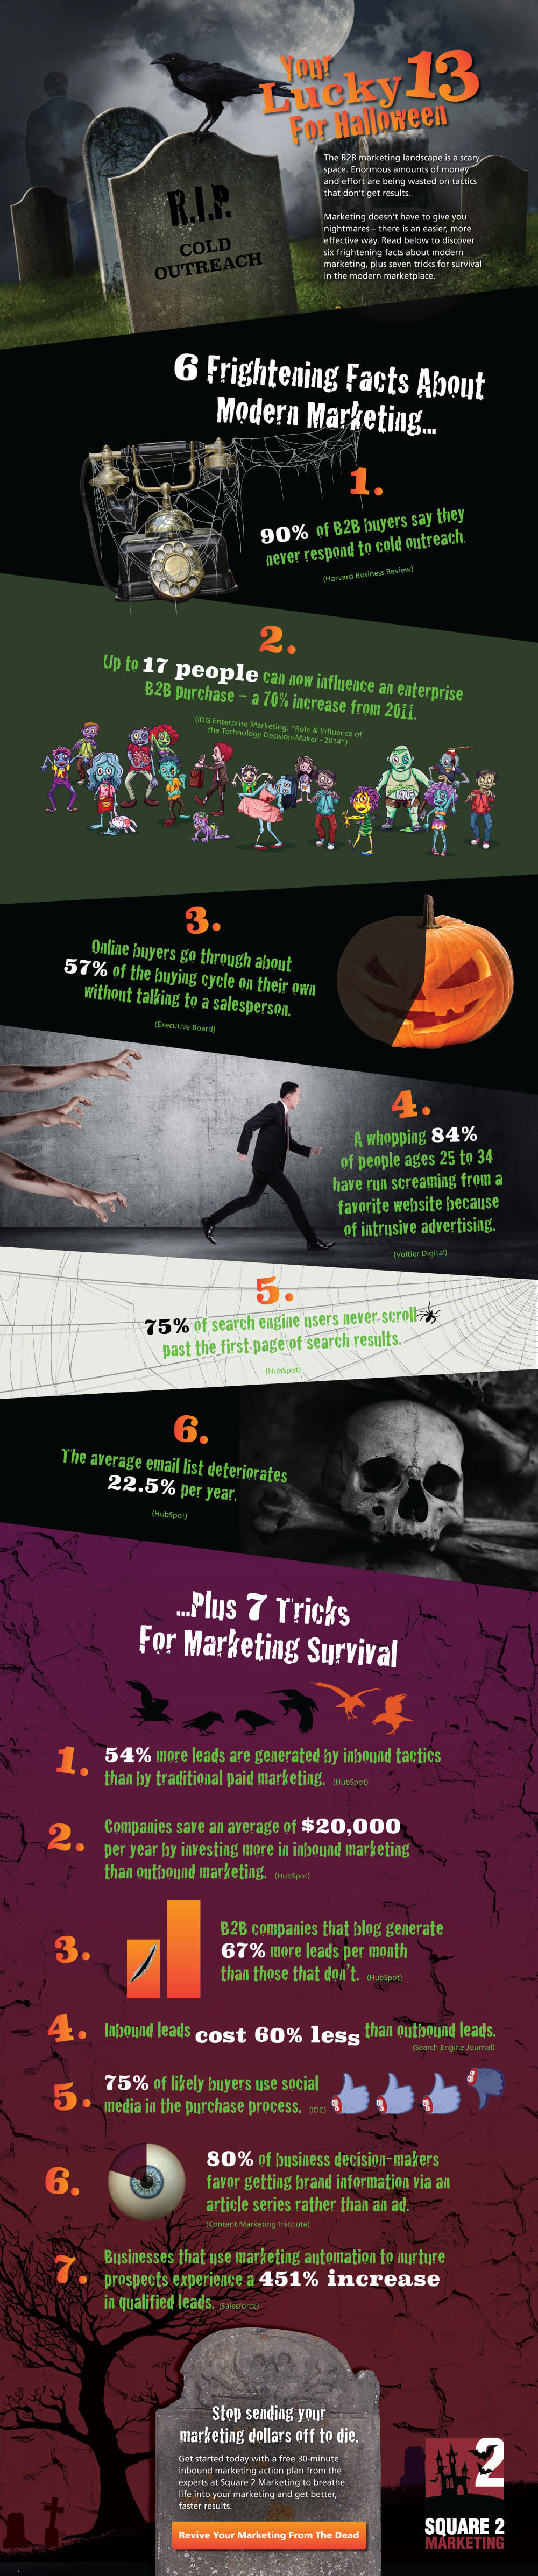 Scare2Marketing-Infographic_4.jpg